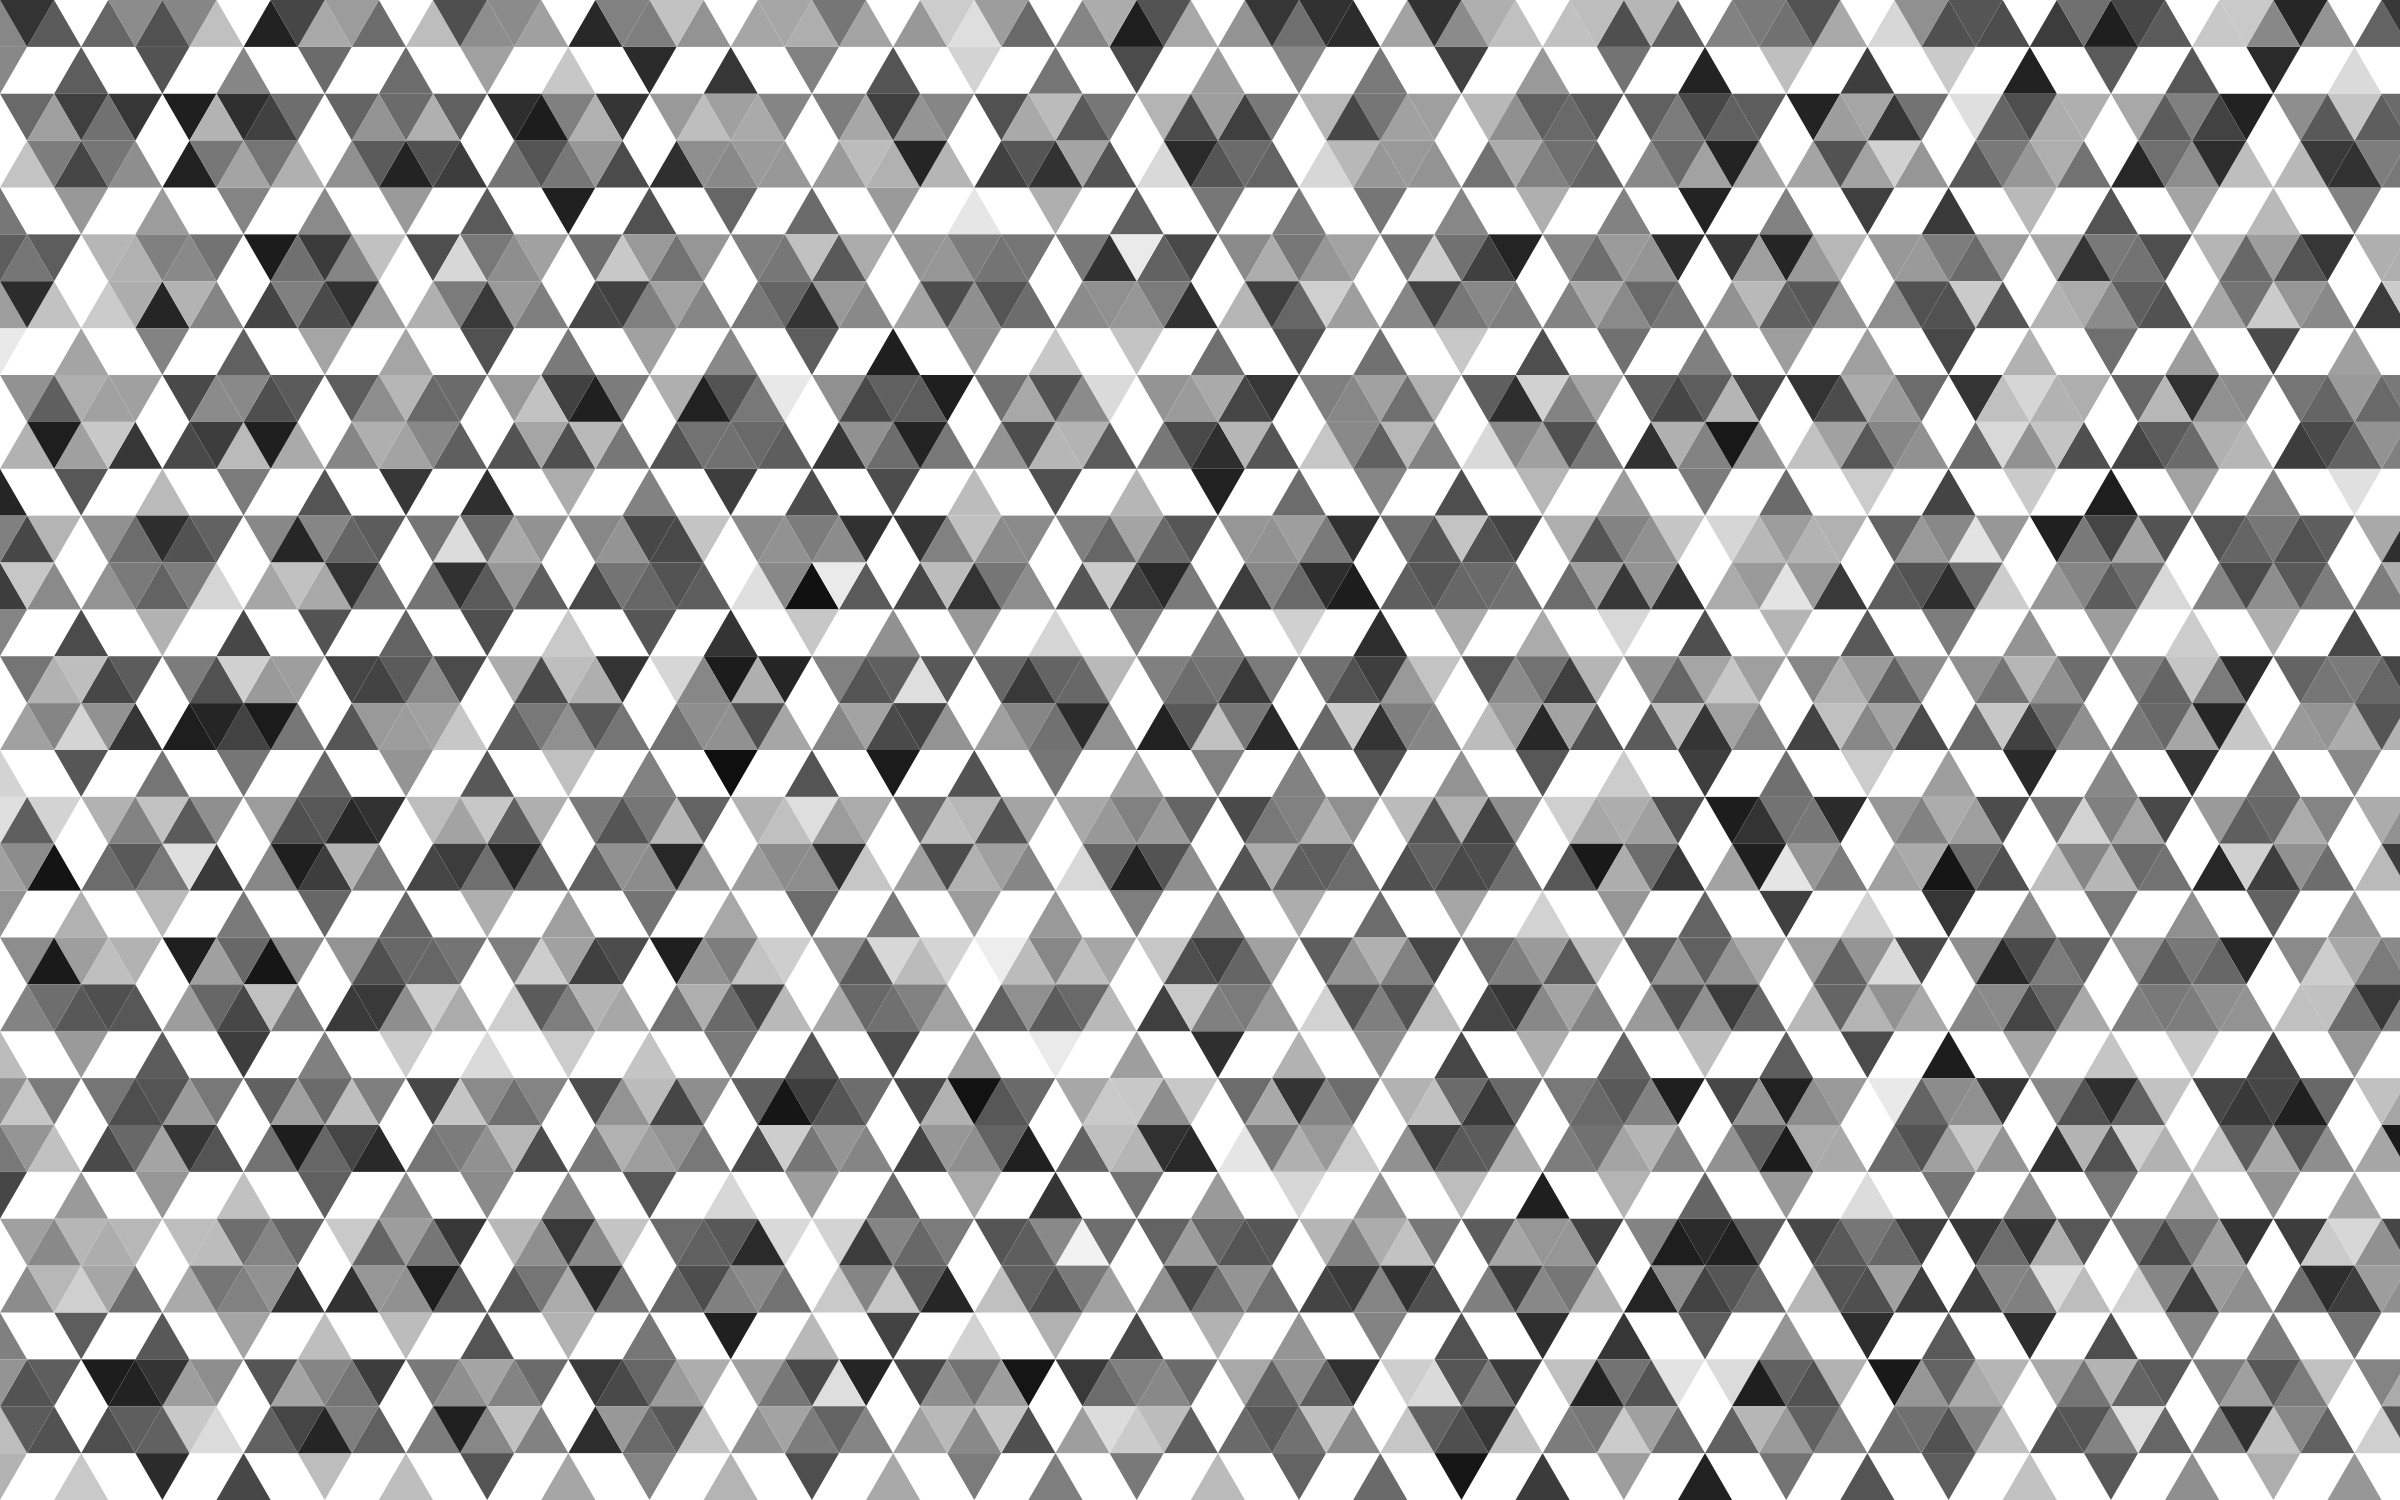 Geometric Pattern Stunning Clipart  Grayscale Geometric Pattern Design Inspiration